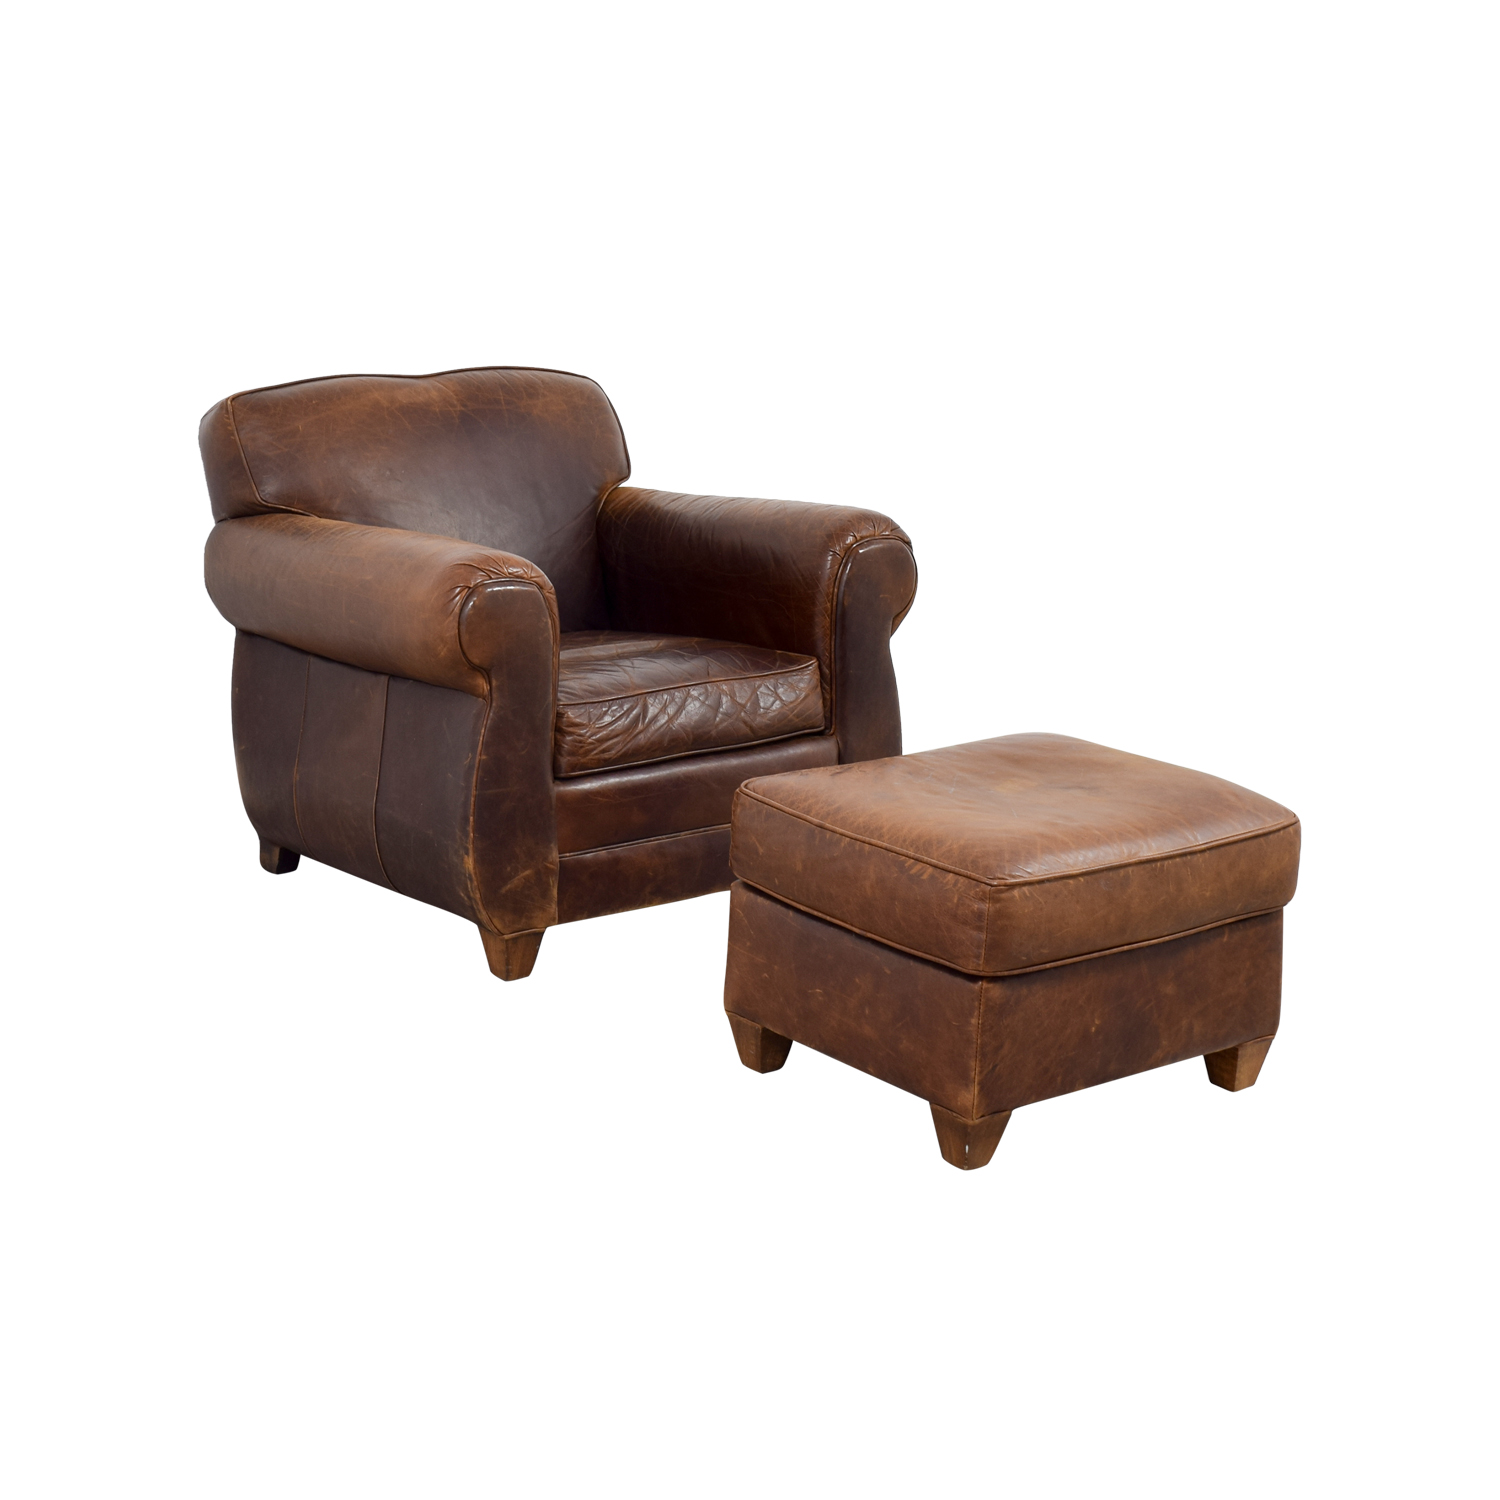 Terrific 64 Off Restoration Hardware Restoration Hardware 1940S Moustache Leather Chair And Ottoman Chairs Ocoug Best Dining Table And Chair Ideas Images Ocougorg